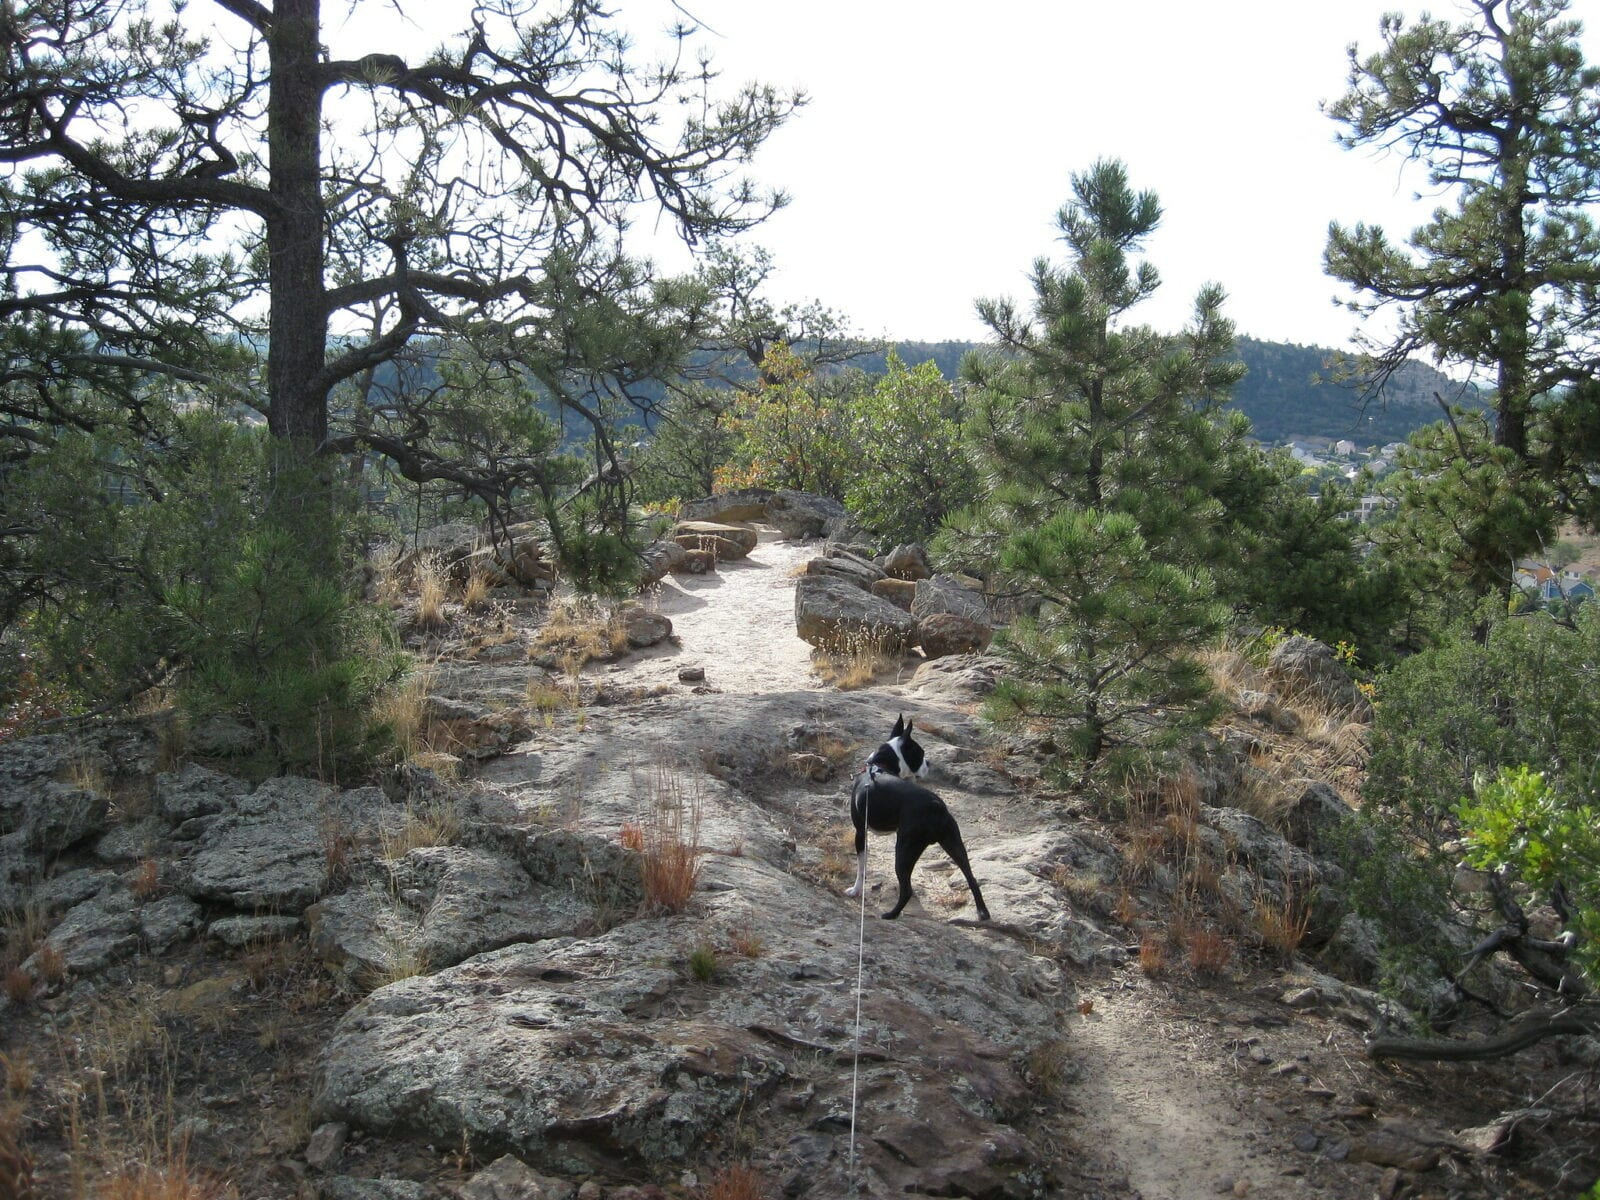 Image of a dog on a hike at the Austin Bluffs Open Space in Colorado Springs, Colorado